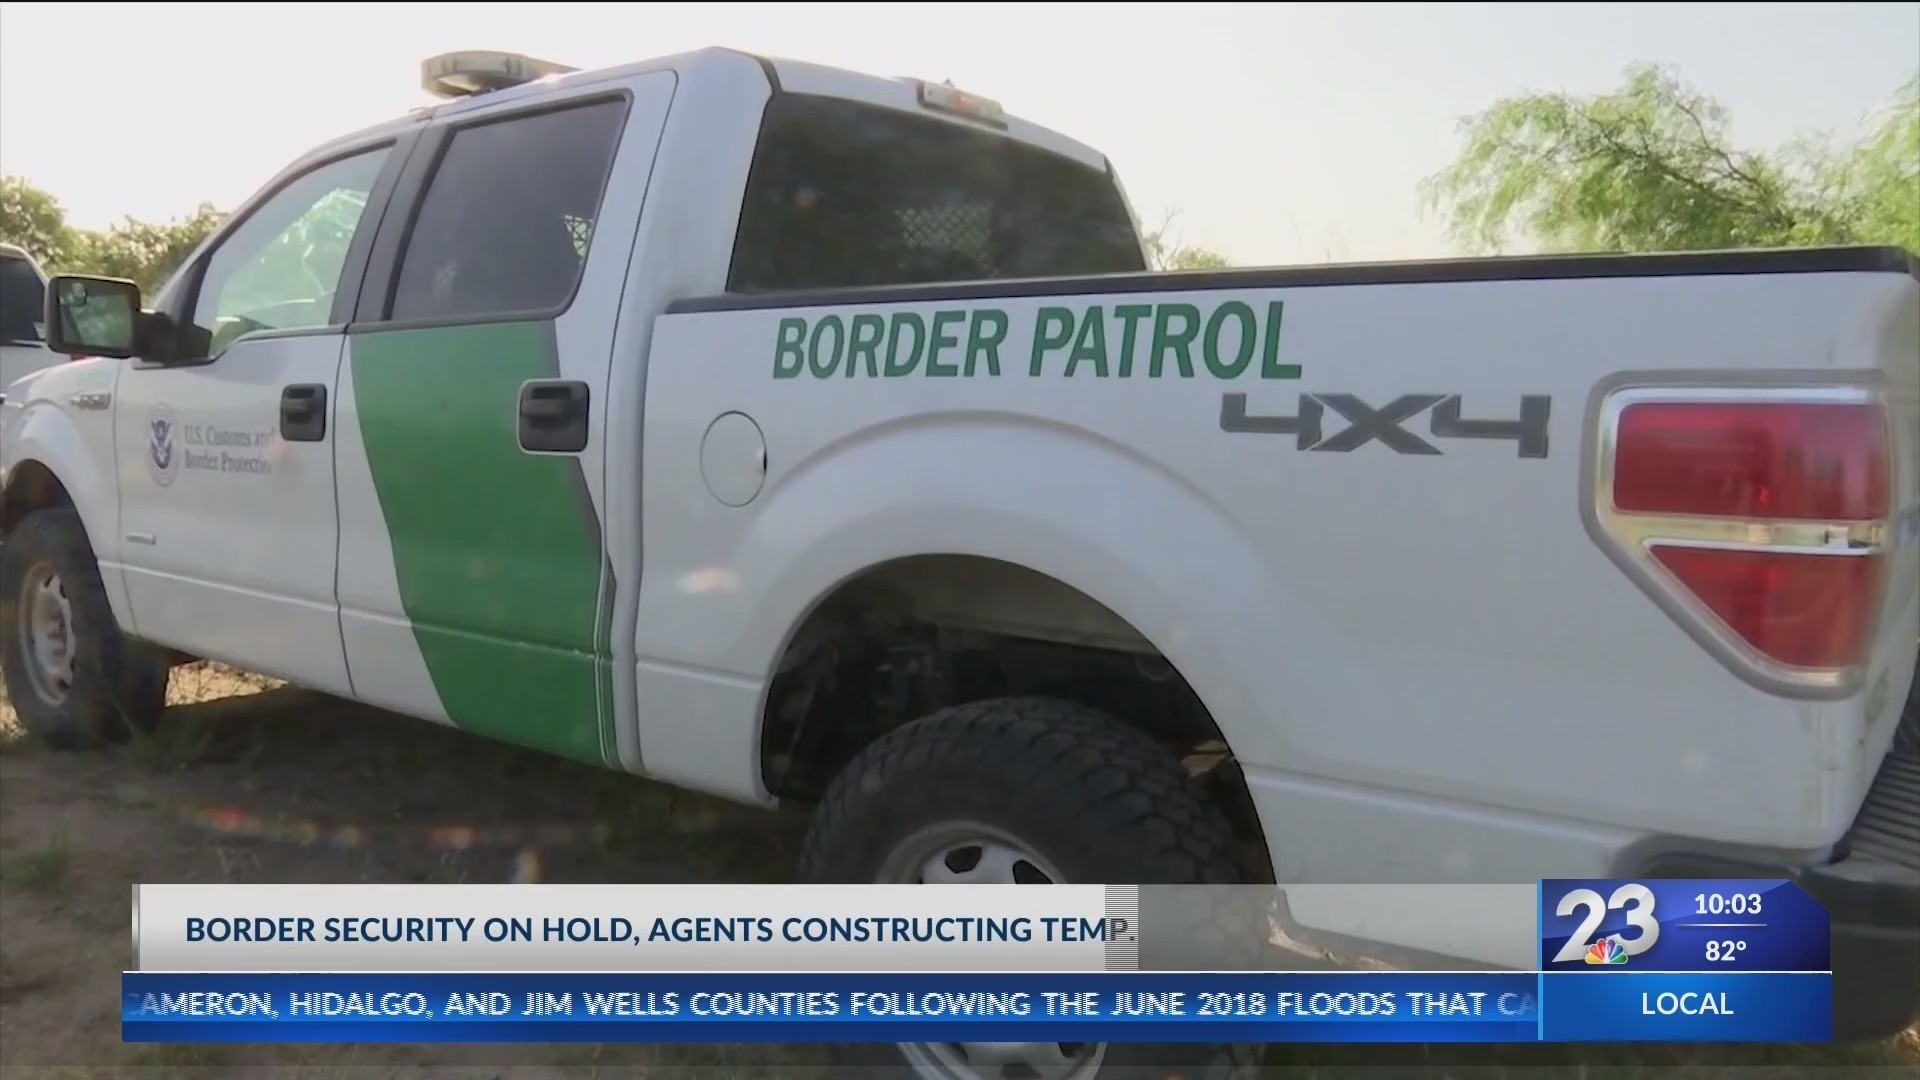 Border_Patrol_takes_measures_during_curr_0_20190519194114